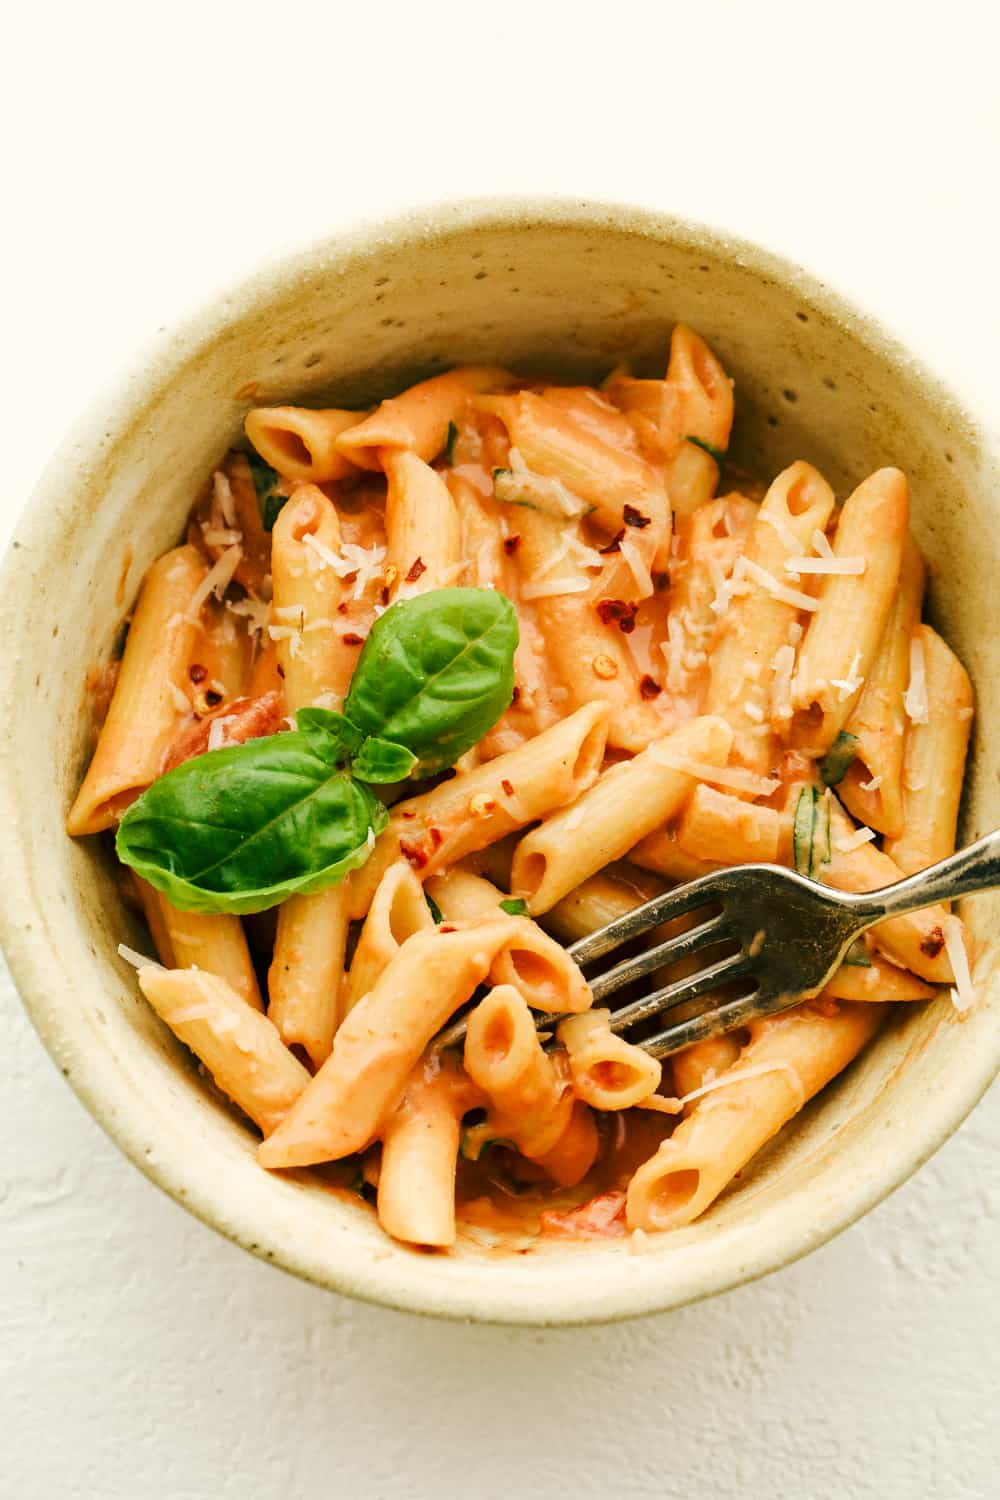 Creamy flavorful Penne Alla Vodka in a bowl.